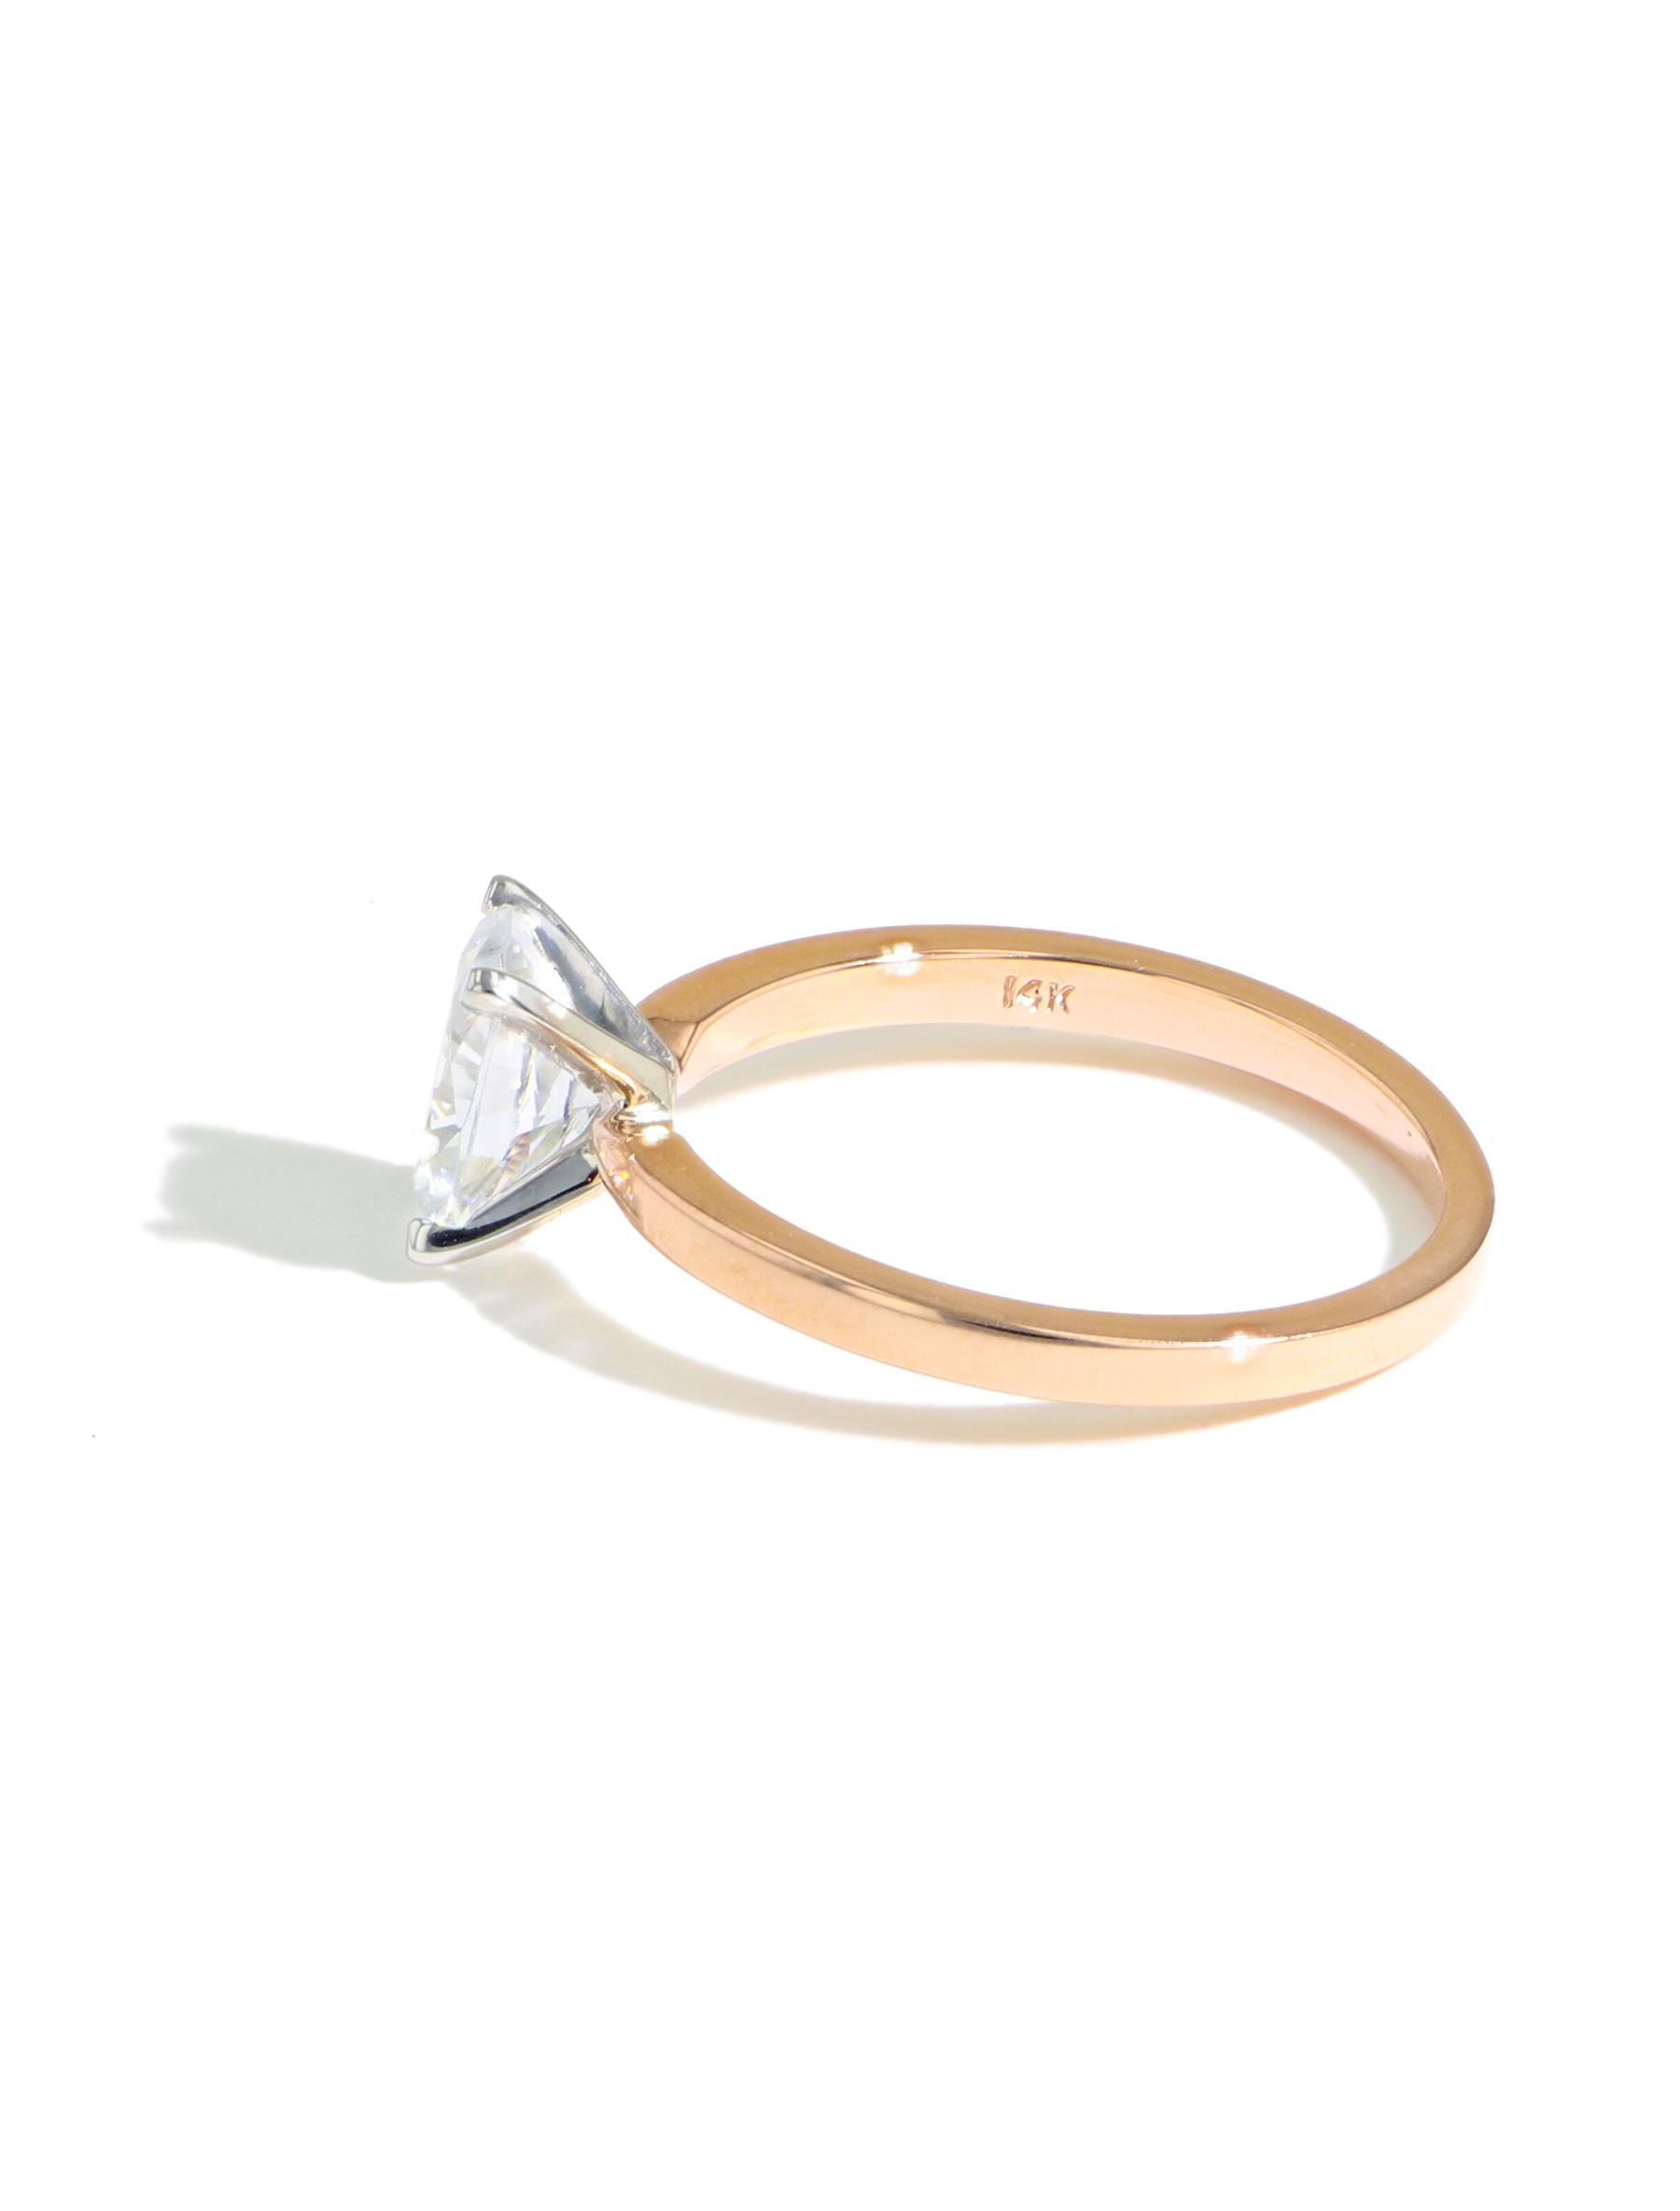 MARS Oval Solitaire Engagement Ring Setting side view